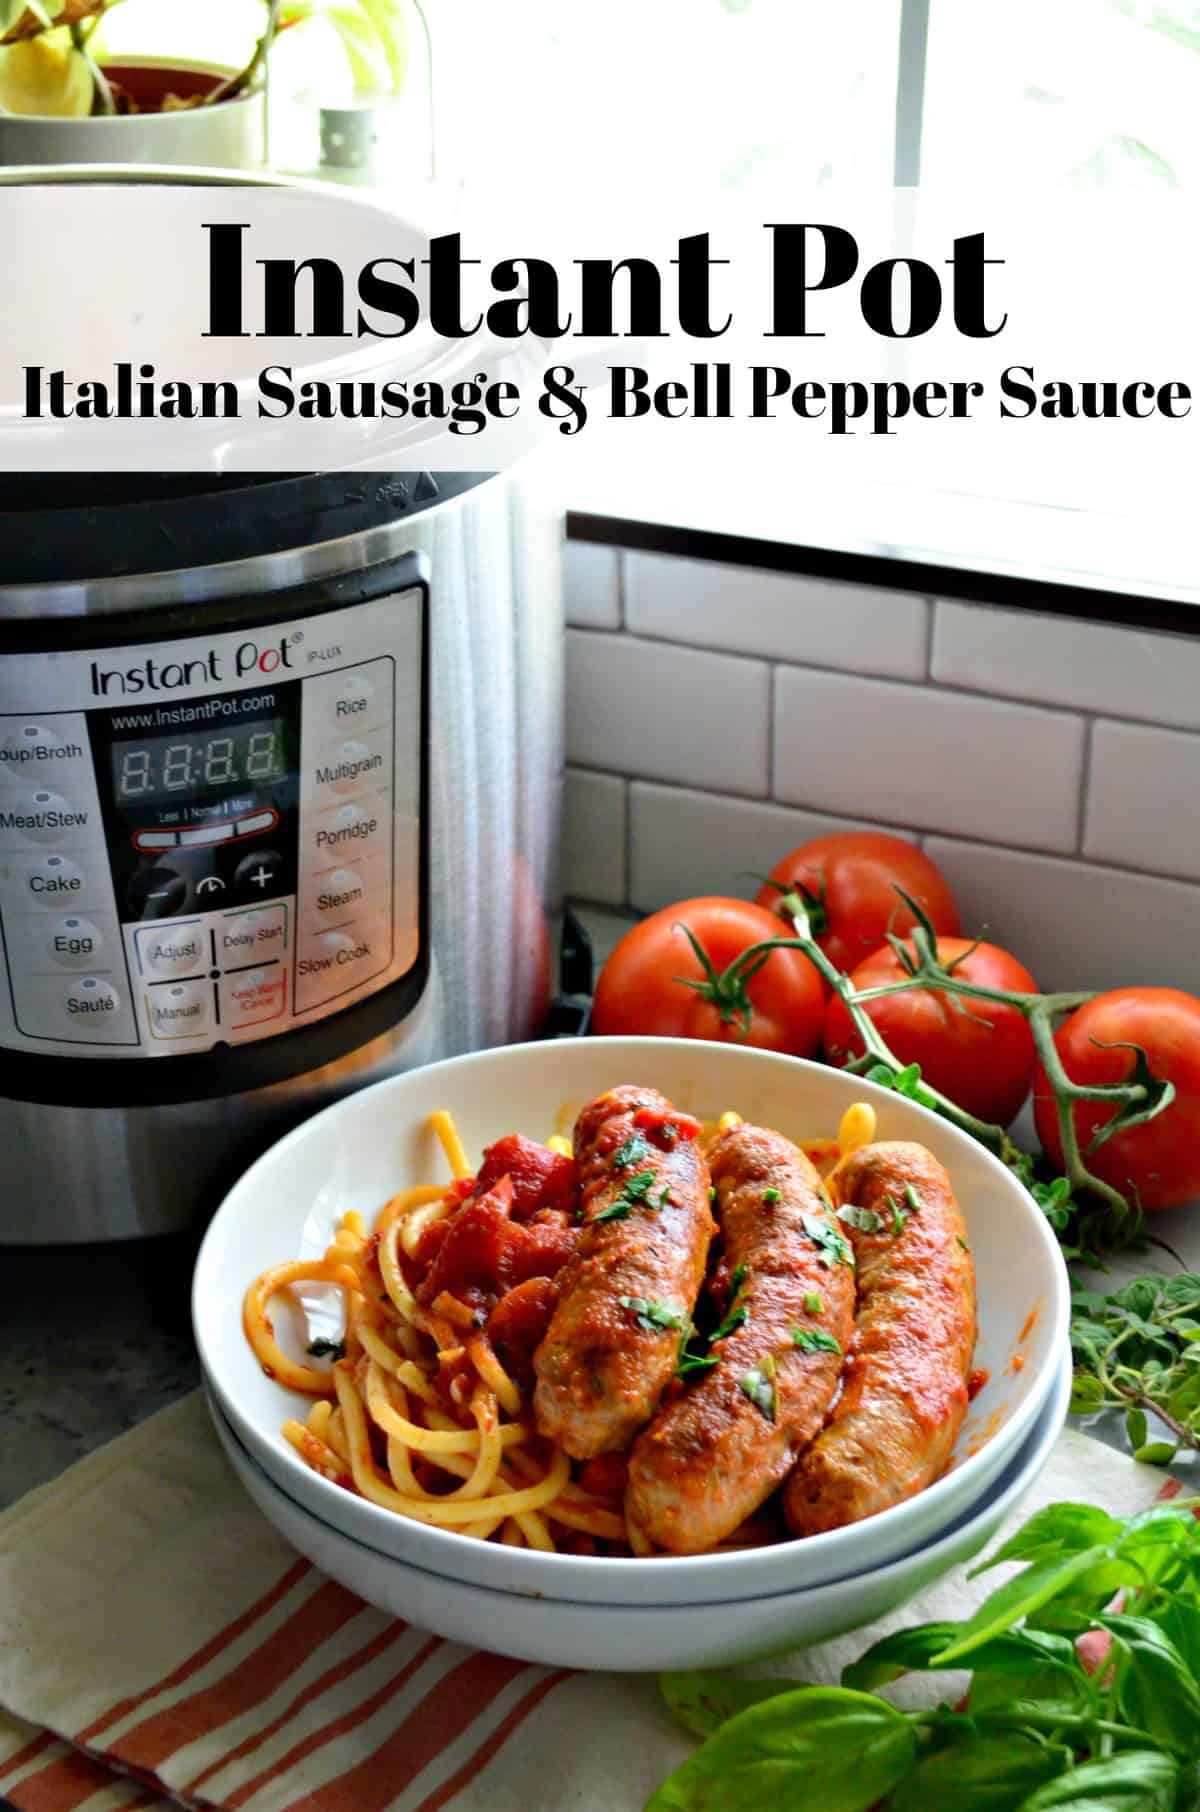 Bowl of italian sausage with marinara and pasta in front of instant pot and tomatoes with title text.